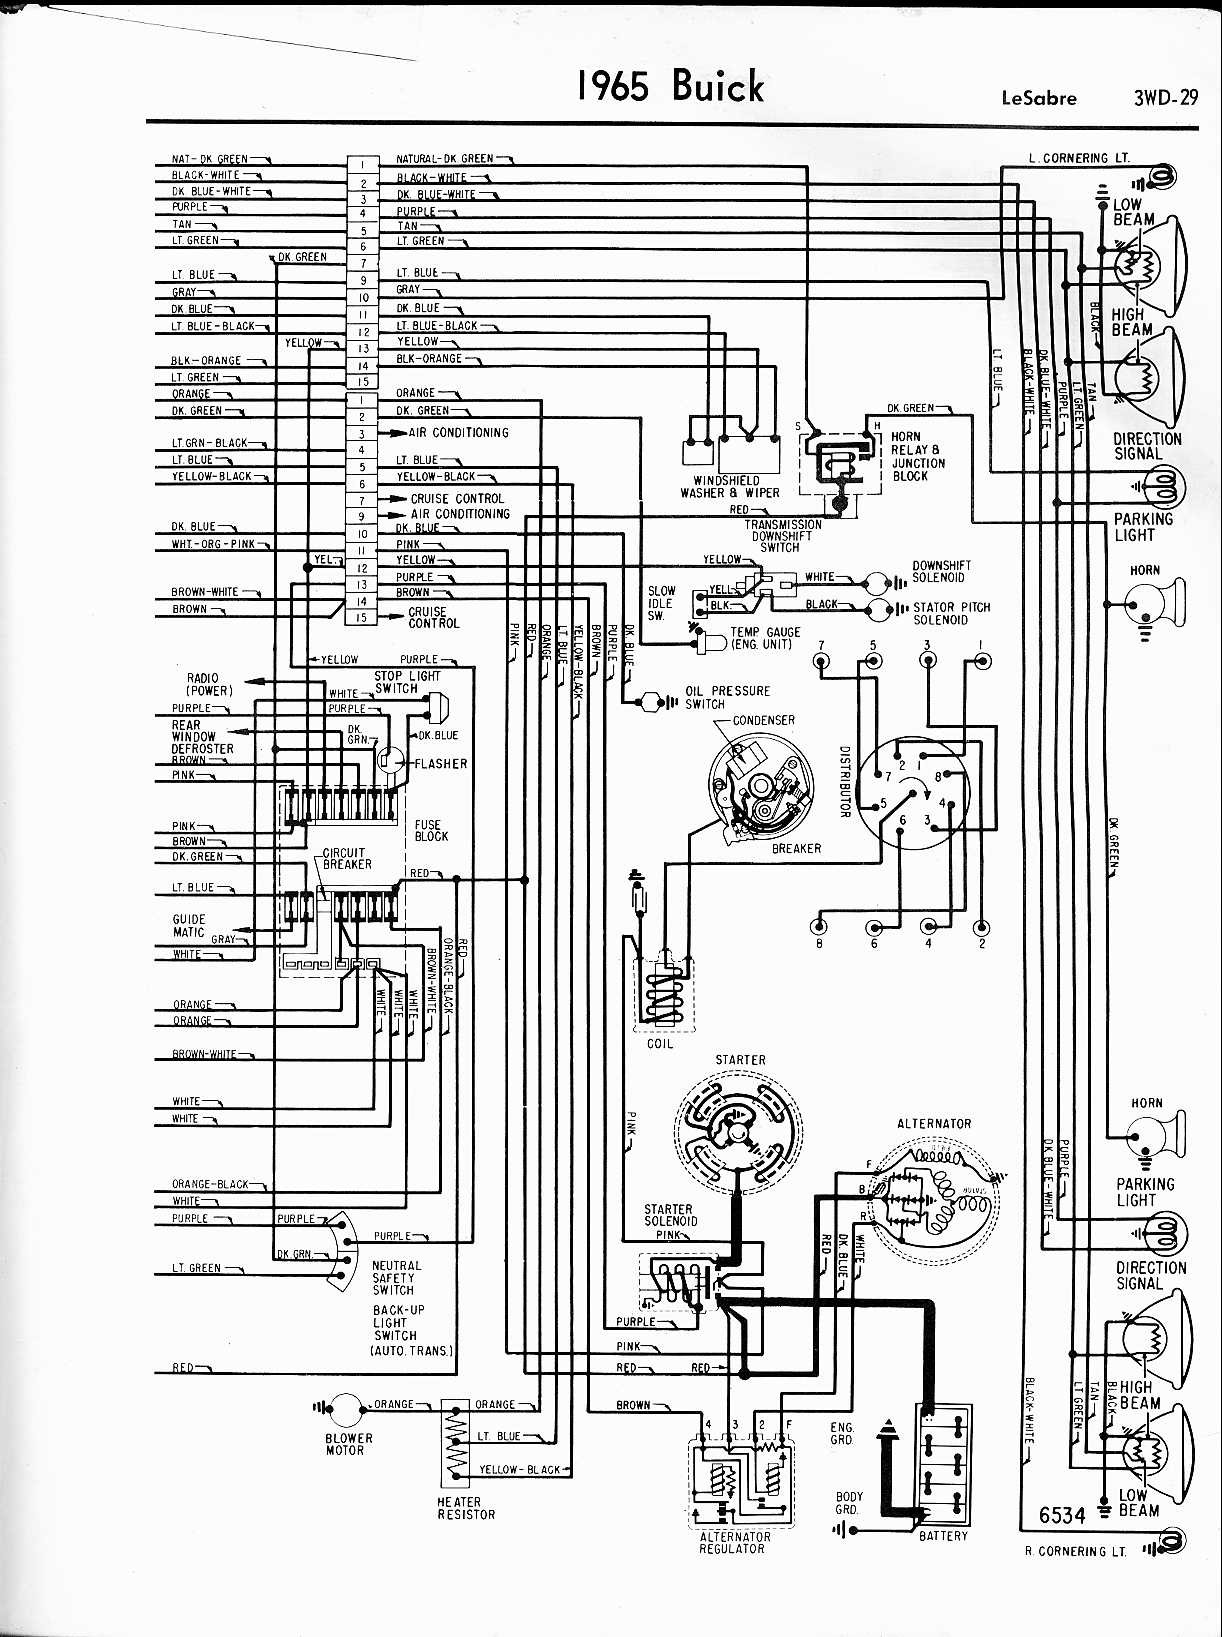 2000 buick lesabre parts diagram double dimmer switch wiring uk door imageresizertool com